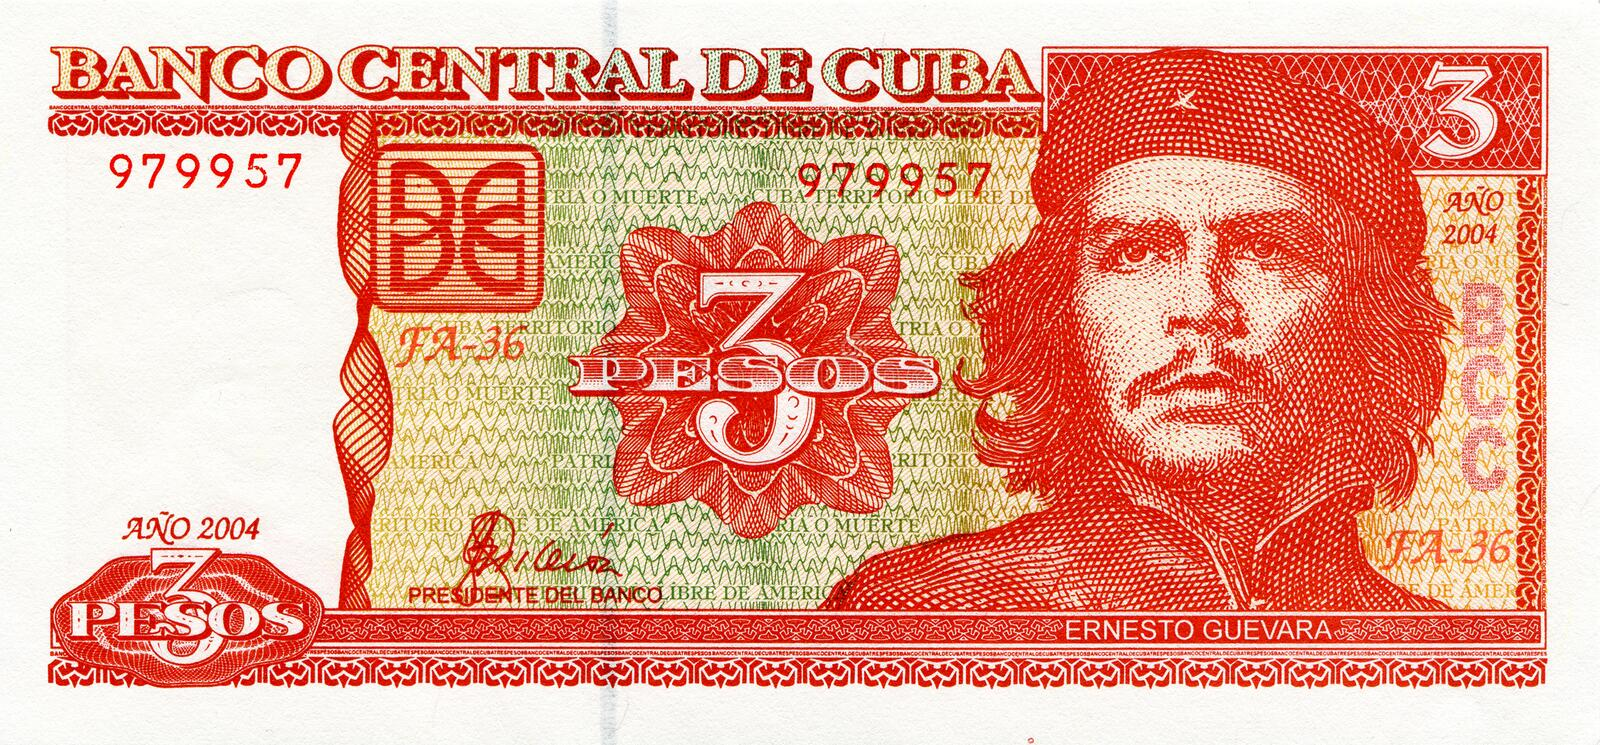 Ernesto Che Guevara on a banknote of Cuba. Face value is 3 peso stock photography